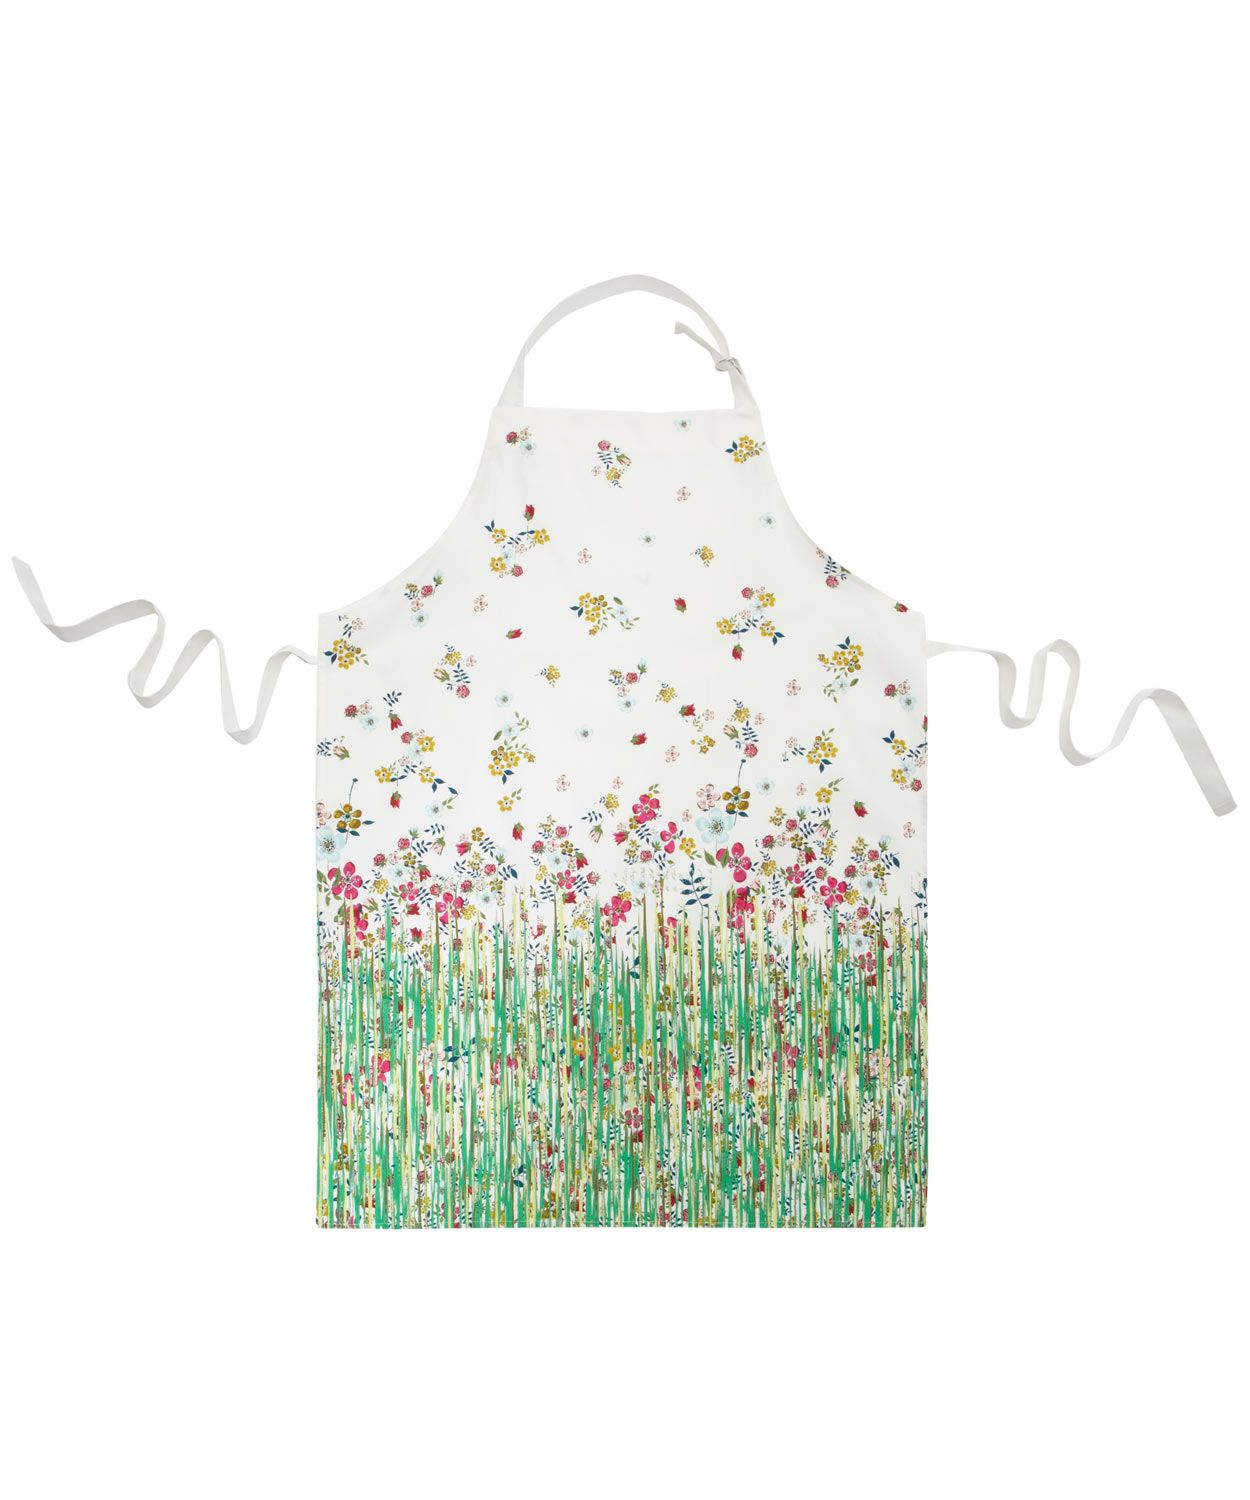 Grass Liberty Print Apron, Liberty London. Shop more kitchen accessories from the Liberty London collection online at Liberty.co.uk